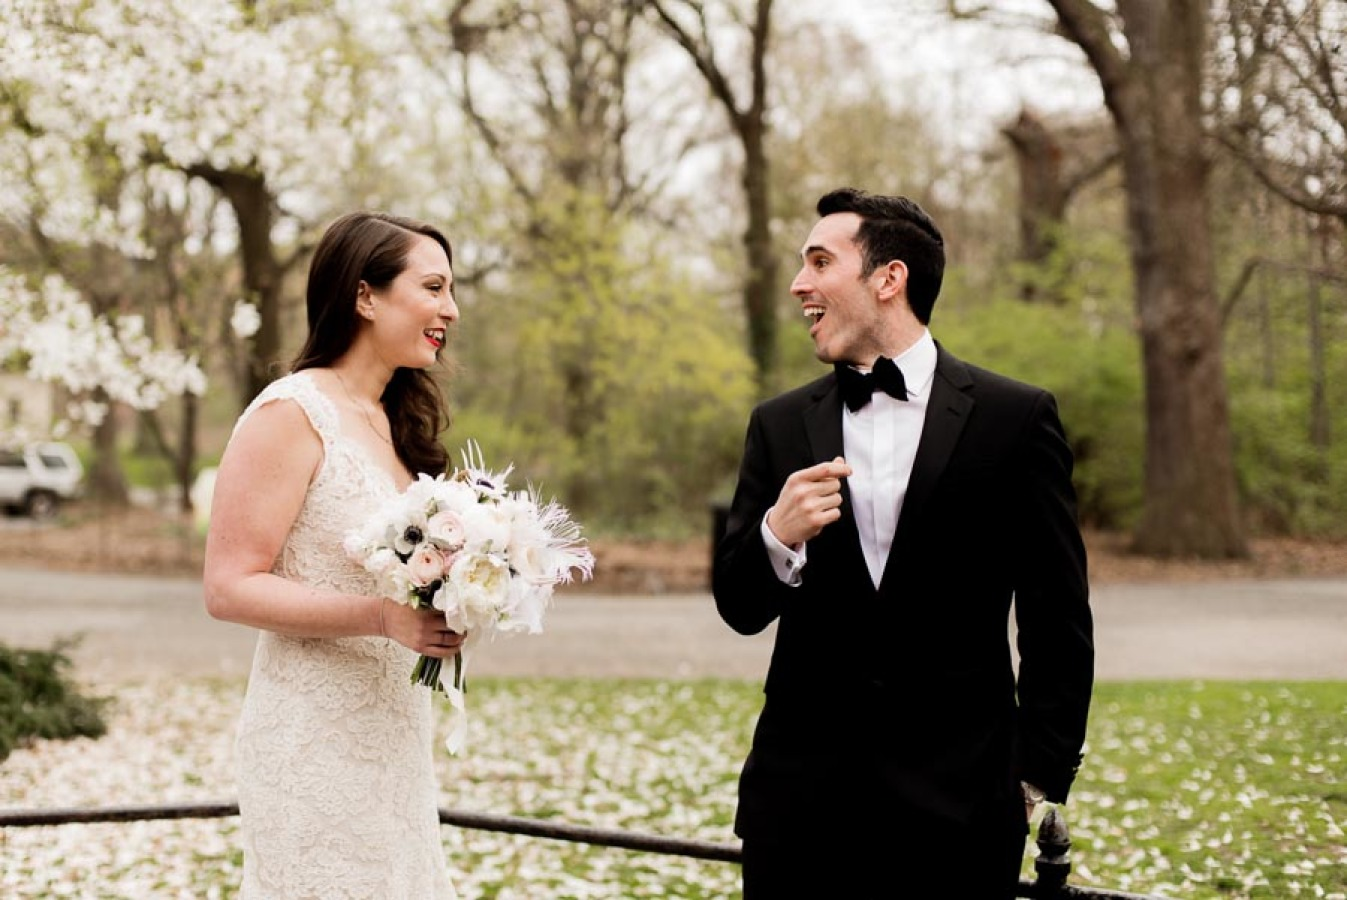 Botanical Garden Wedding Covered in Cherry Blossoms